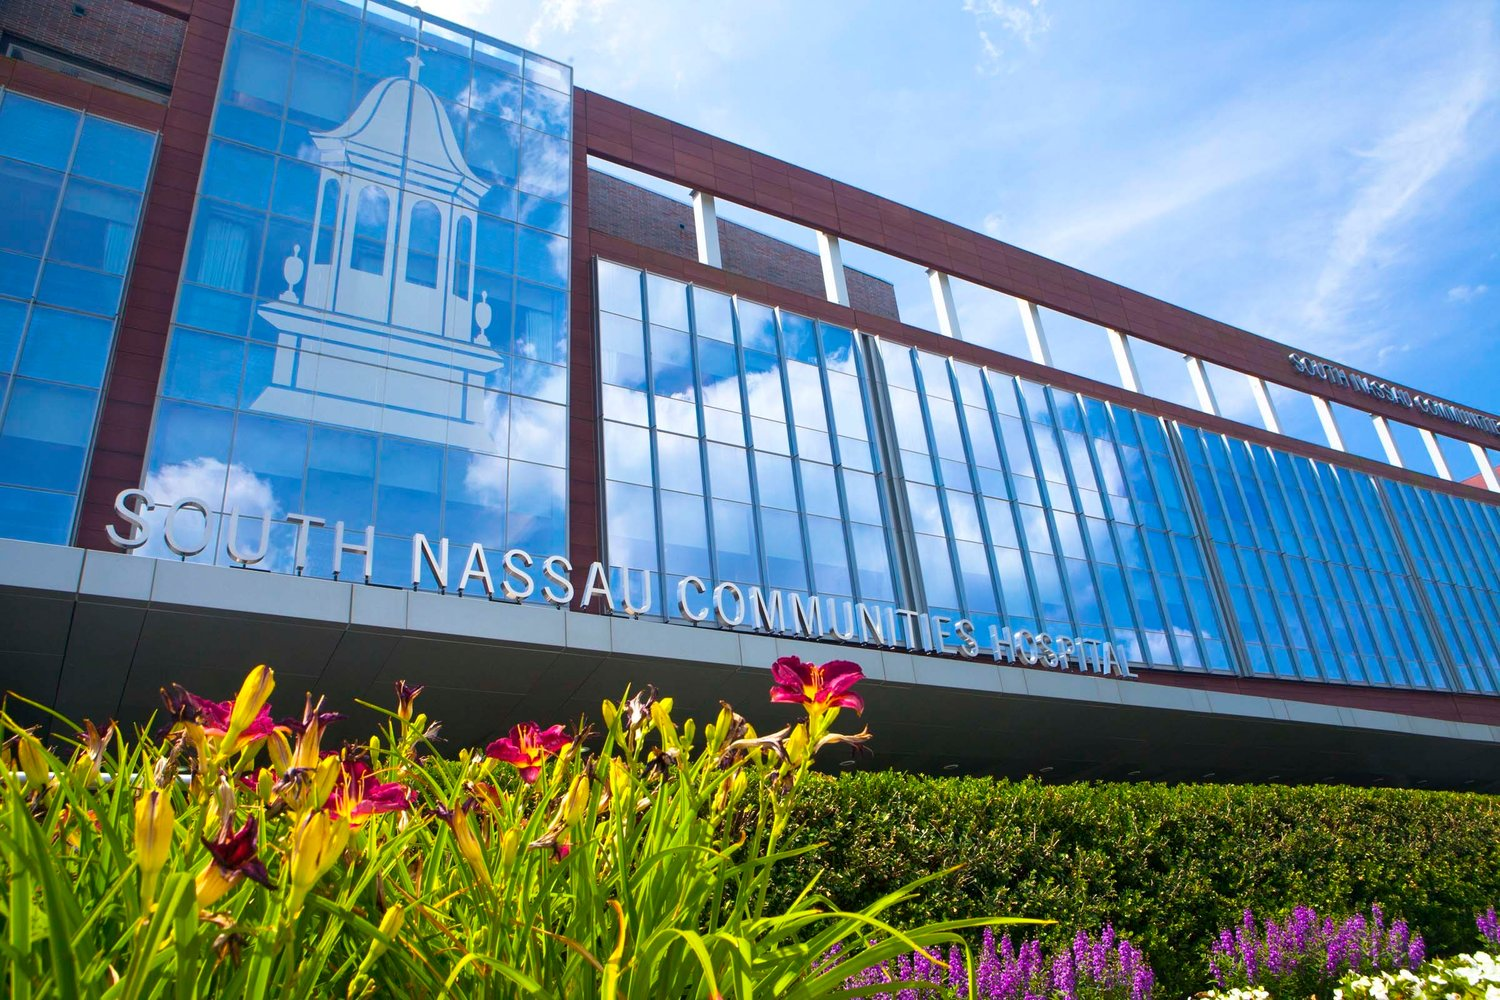 U.S. News and World Report ranked South Nassau Communities Hospital 20th in New York's metropolitan area. Its urology department ranked 35th in country.